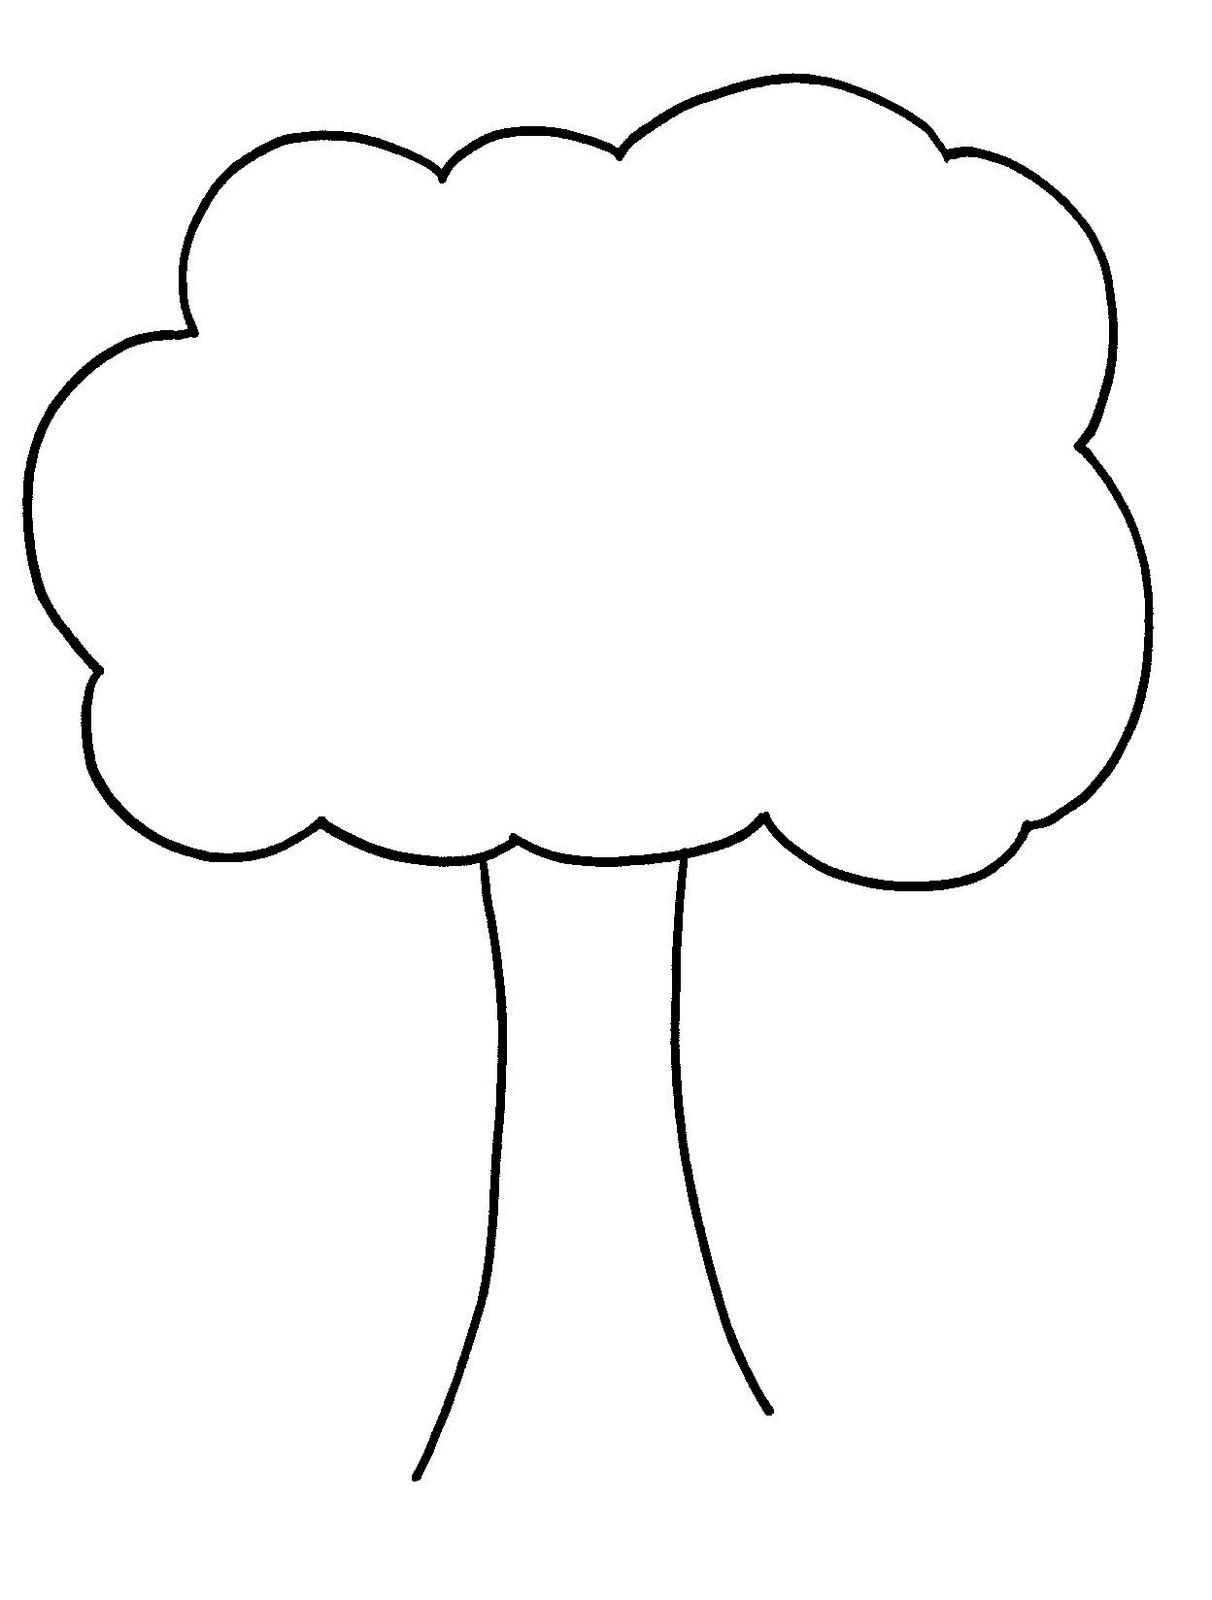 apple tree clipart black and white. clip art tree outline clipart panda free images apple black and white r